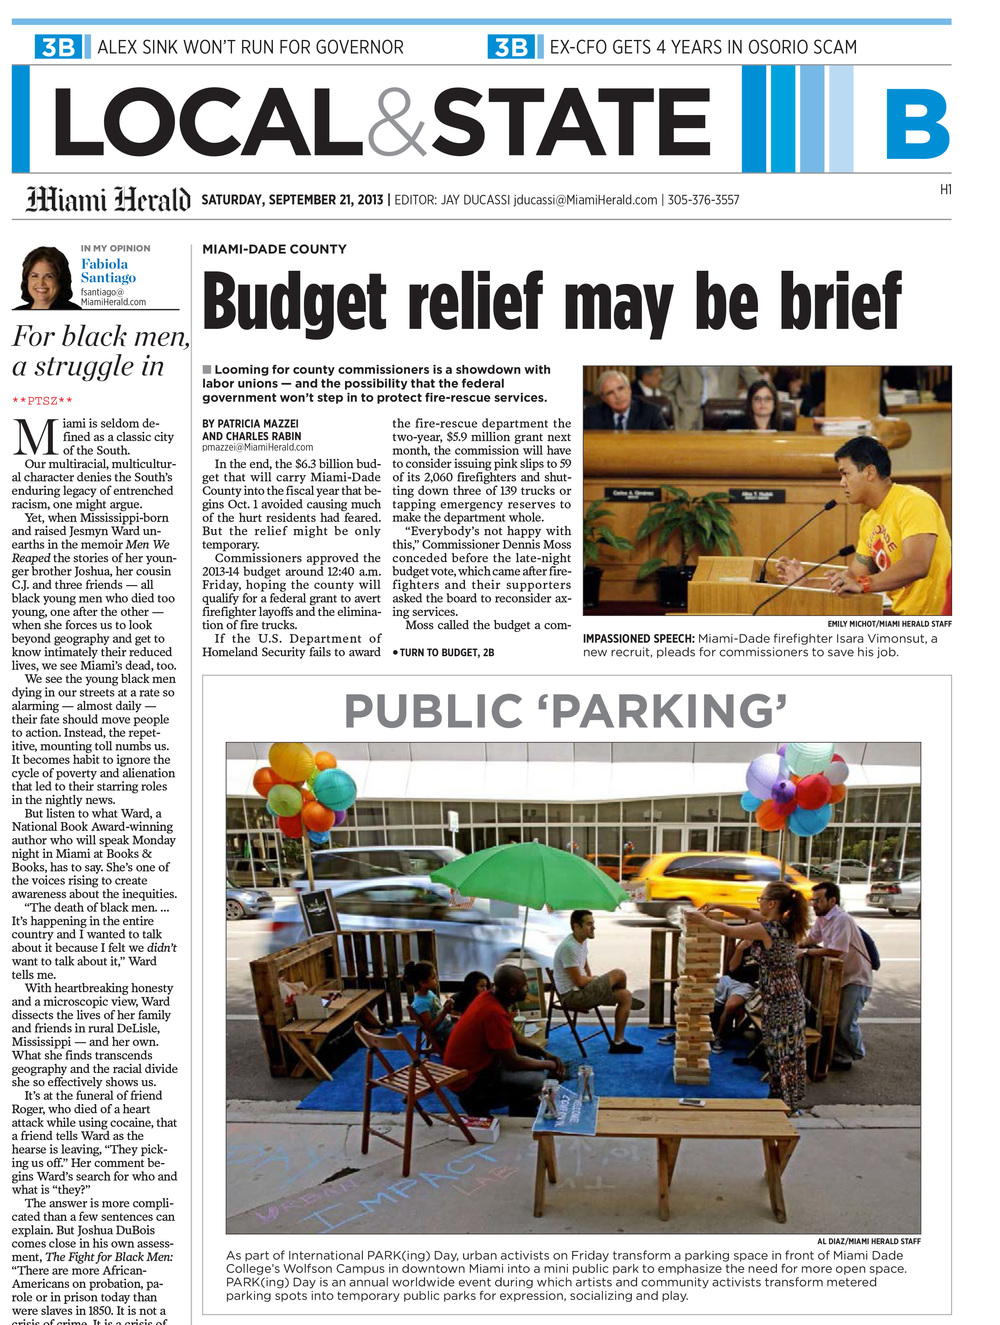 Media Coverage:  The Miami Herald covers Park(ing) Day 2013